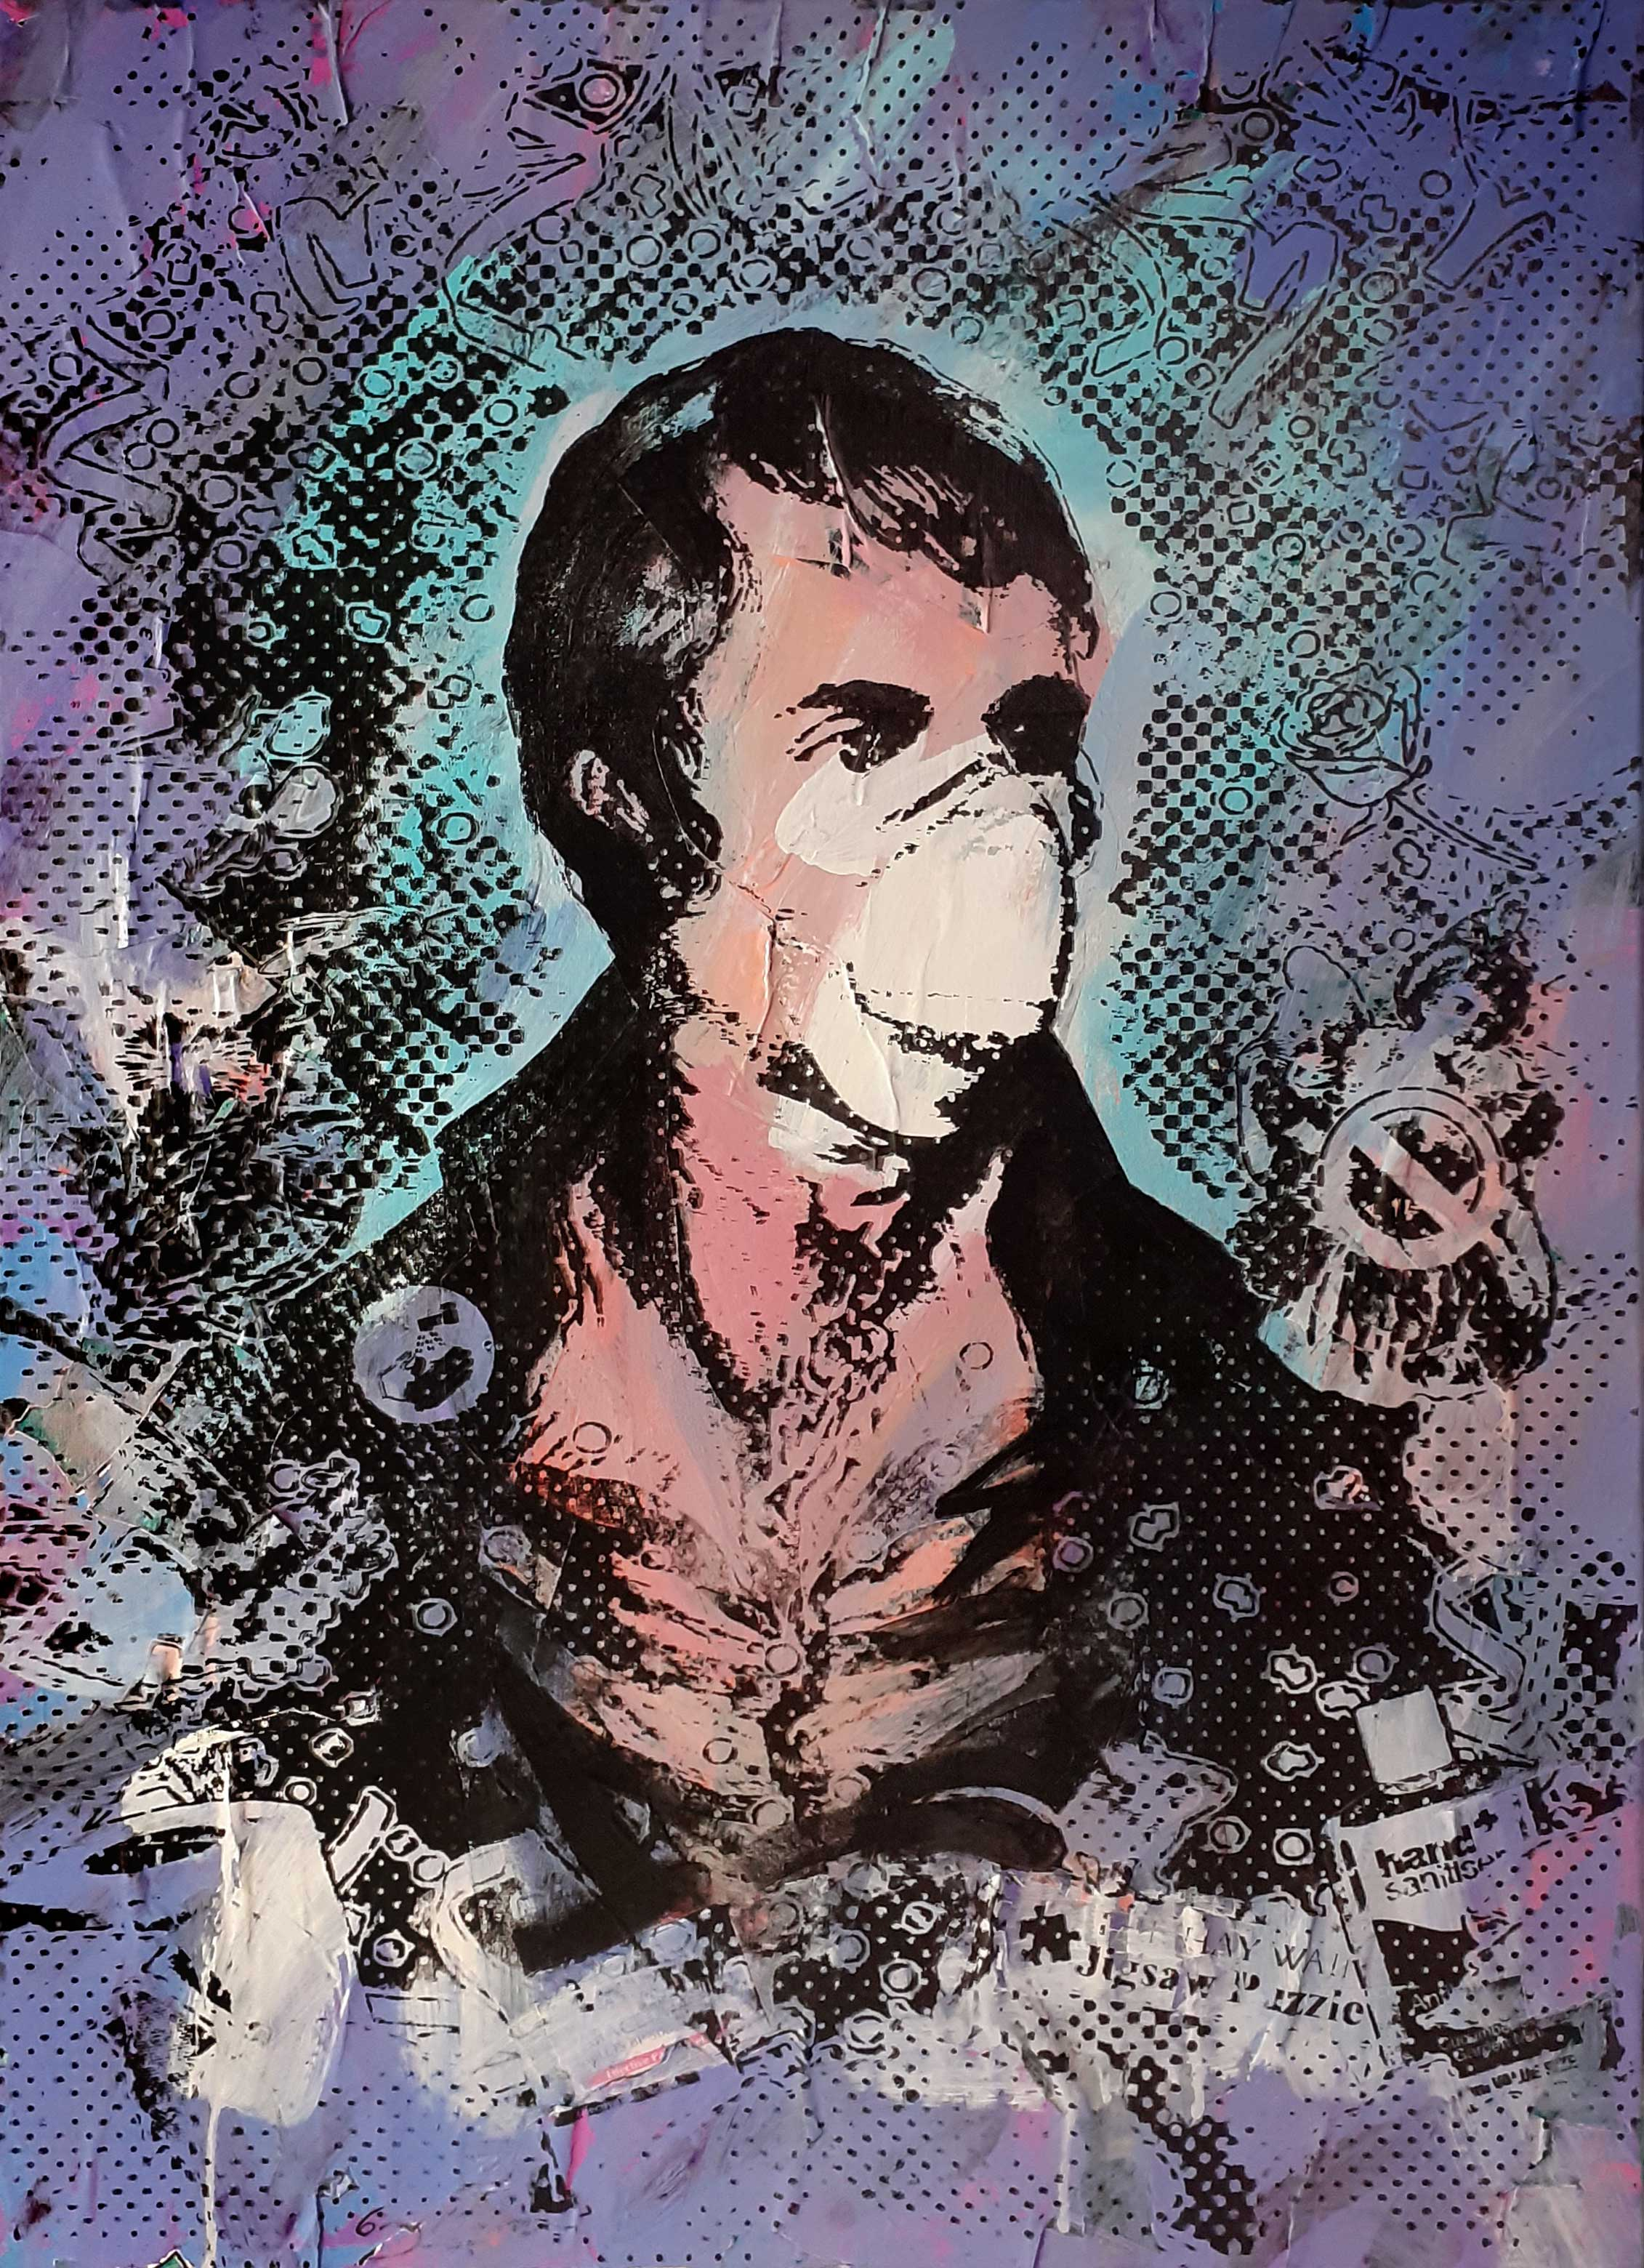 Portrait of Robert Burns - Lockdown2